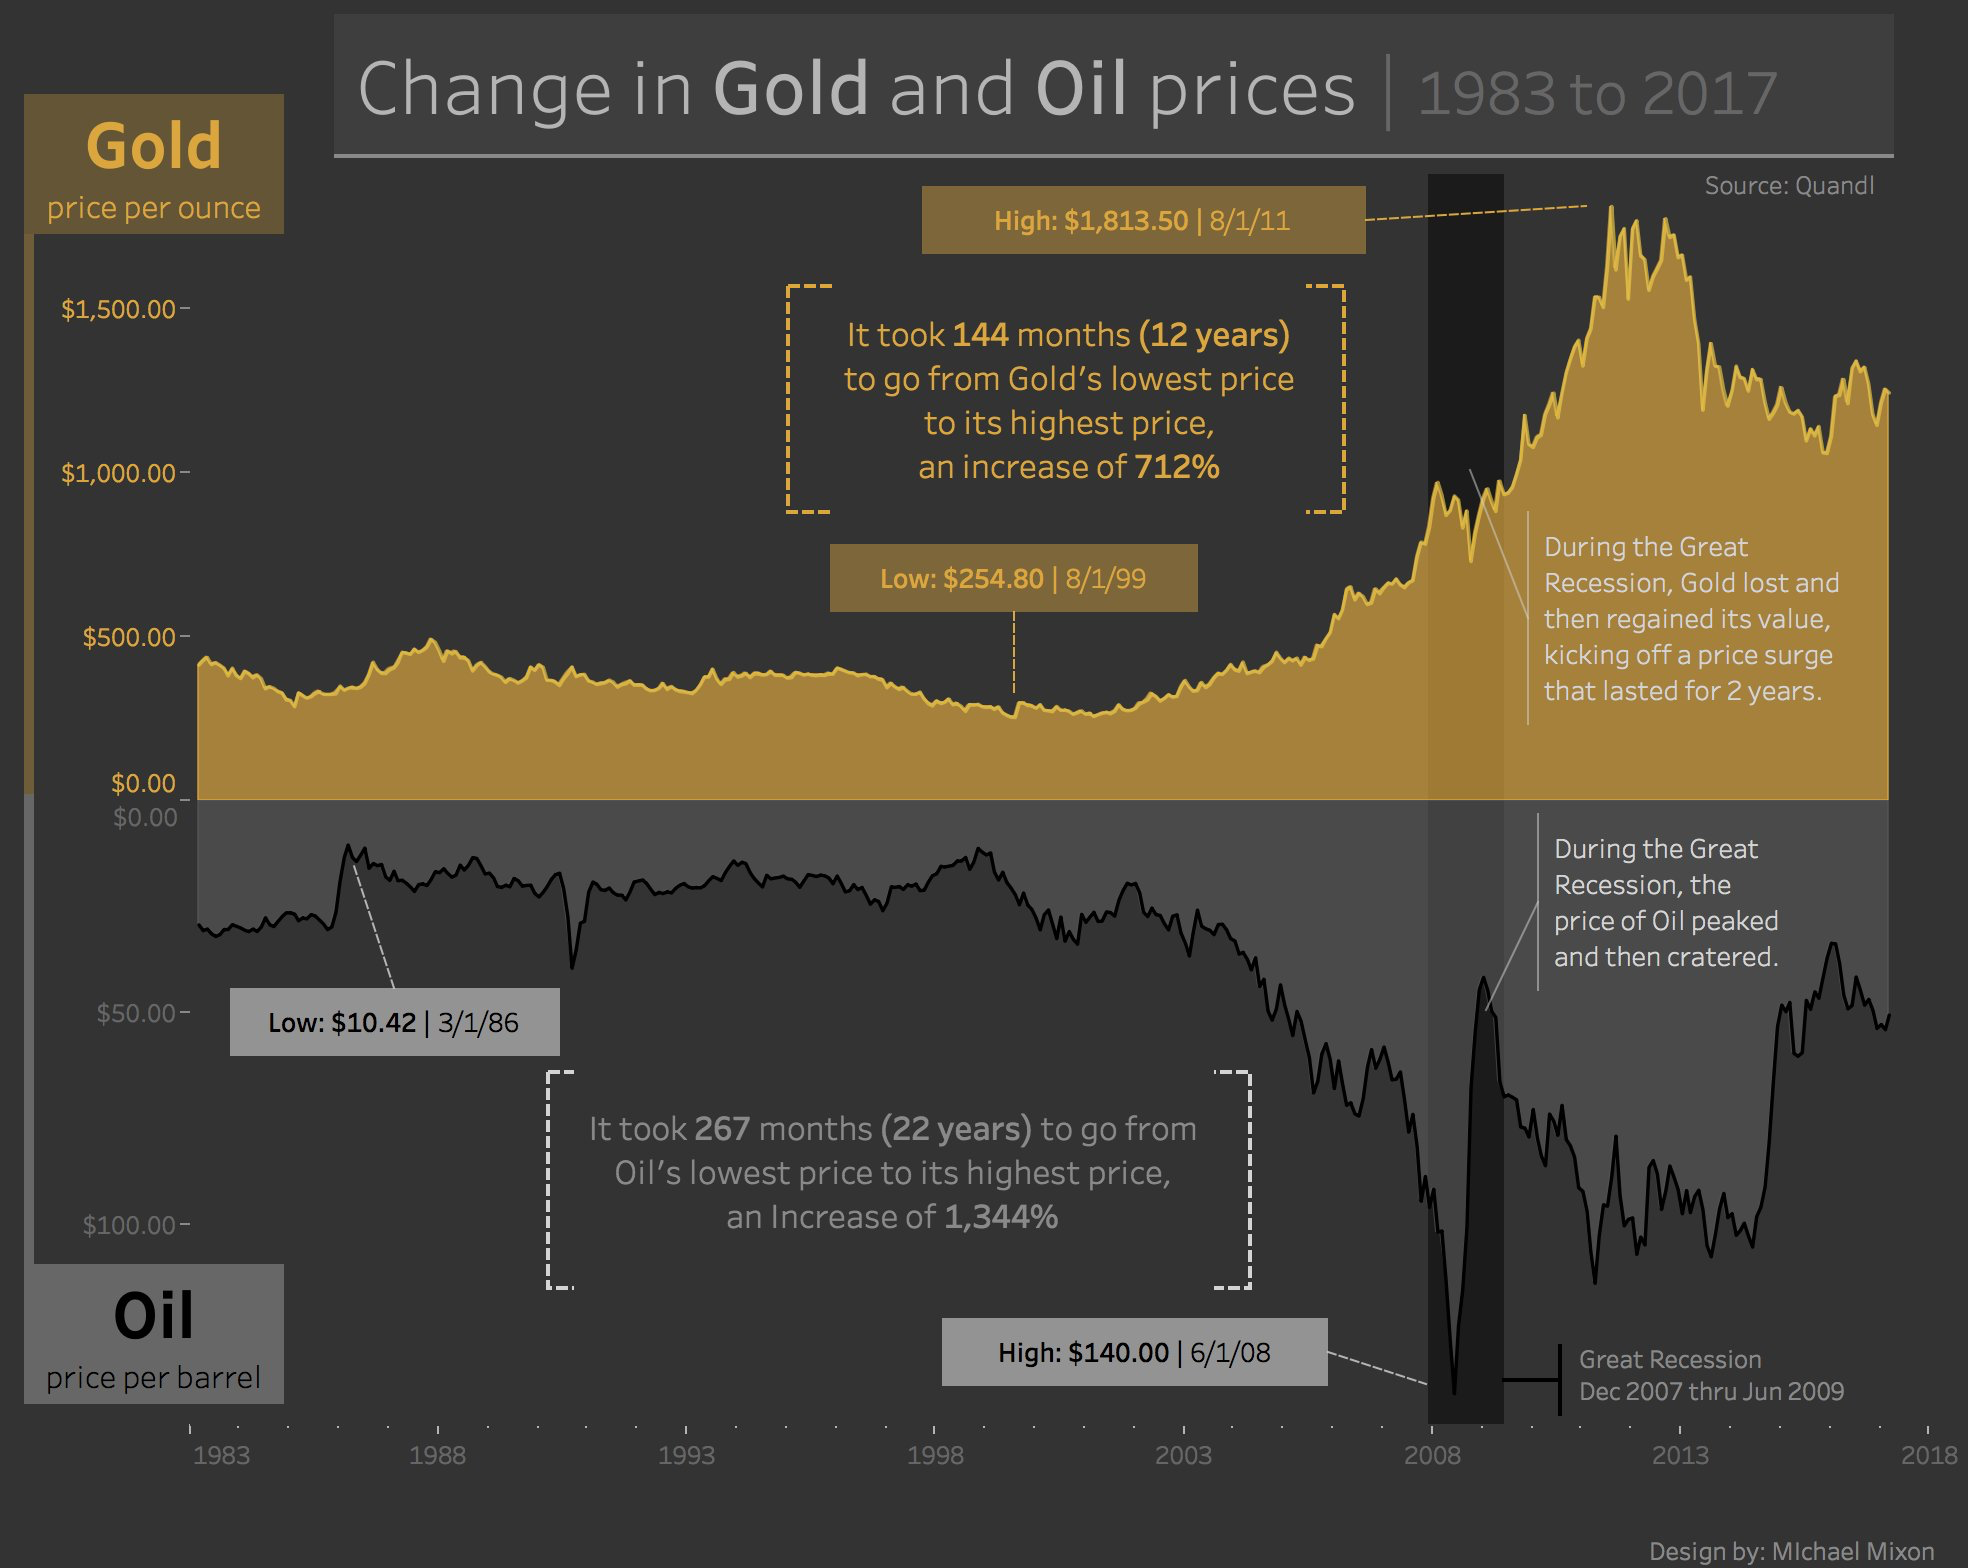 Week 15 – The Price of Oil vs. The Price of Gold